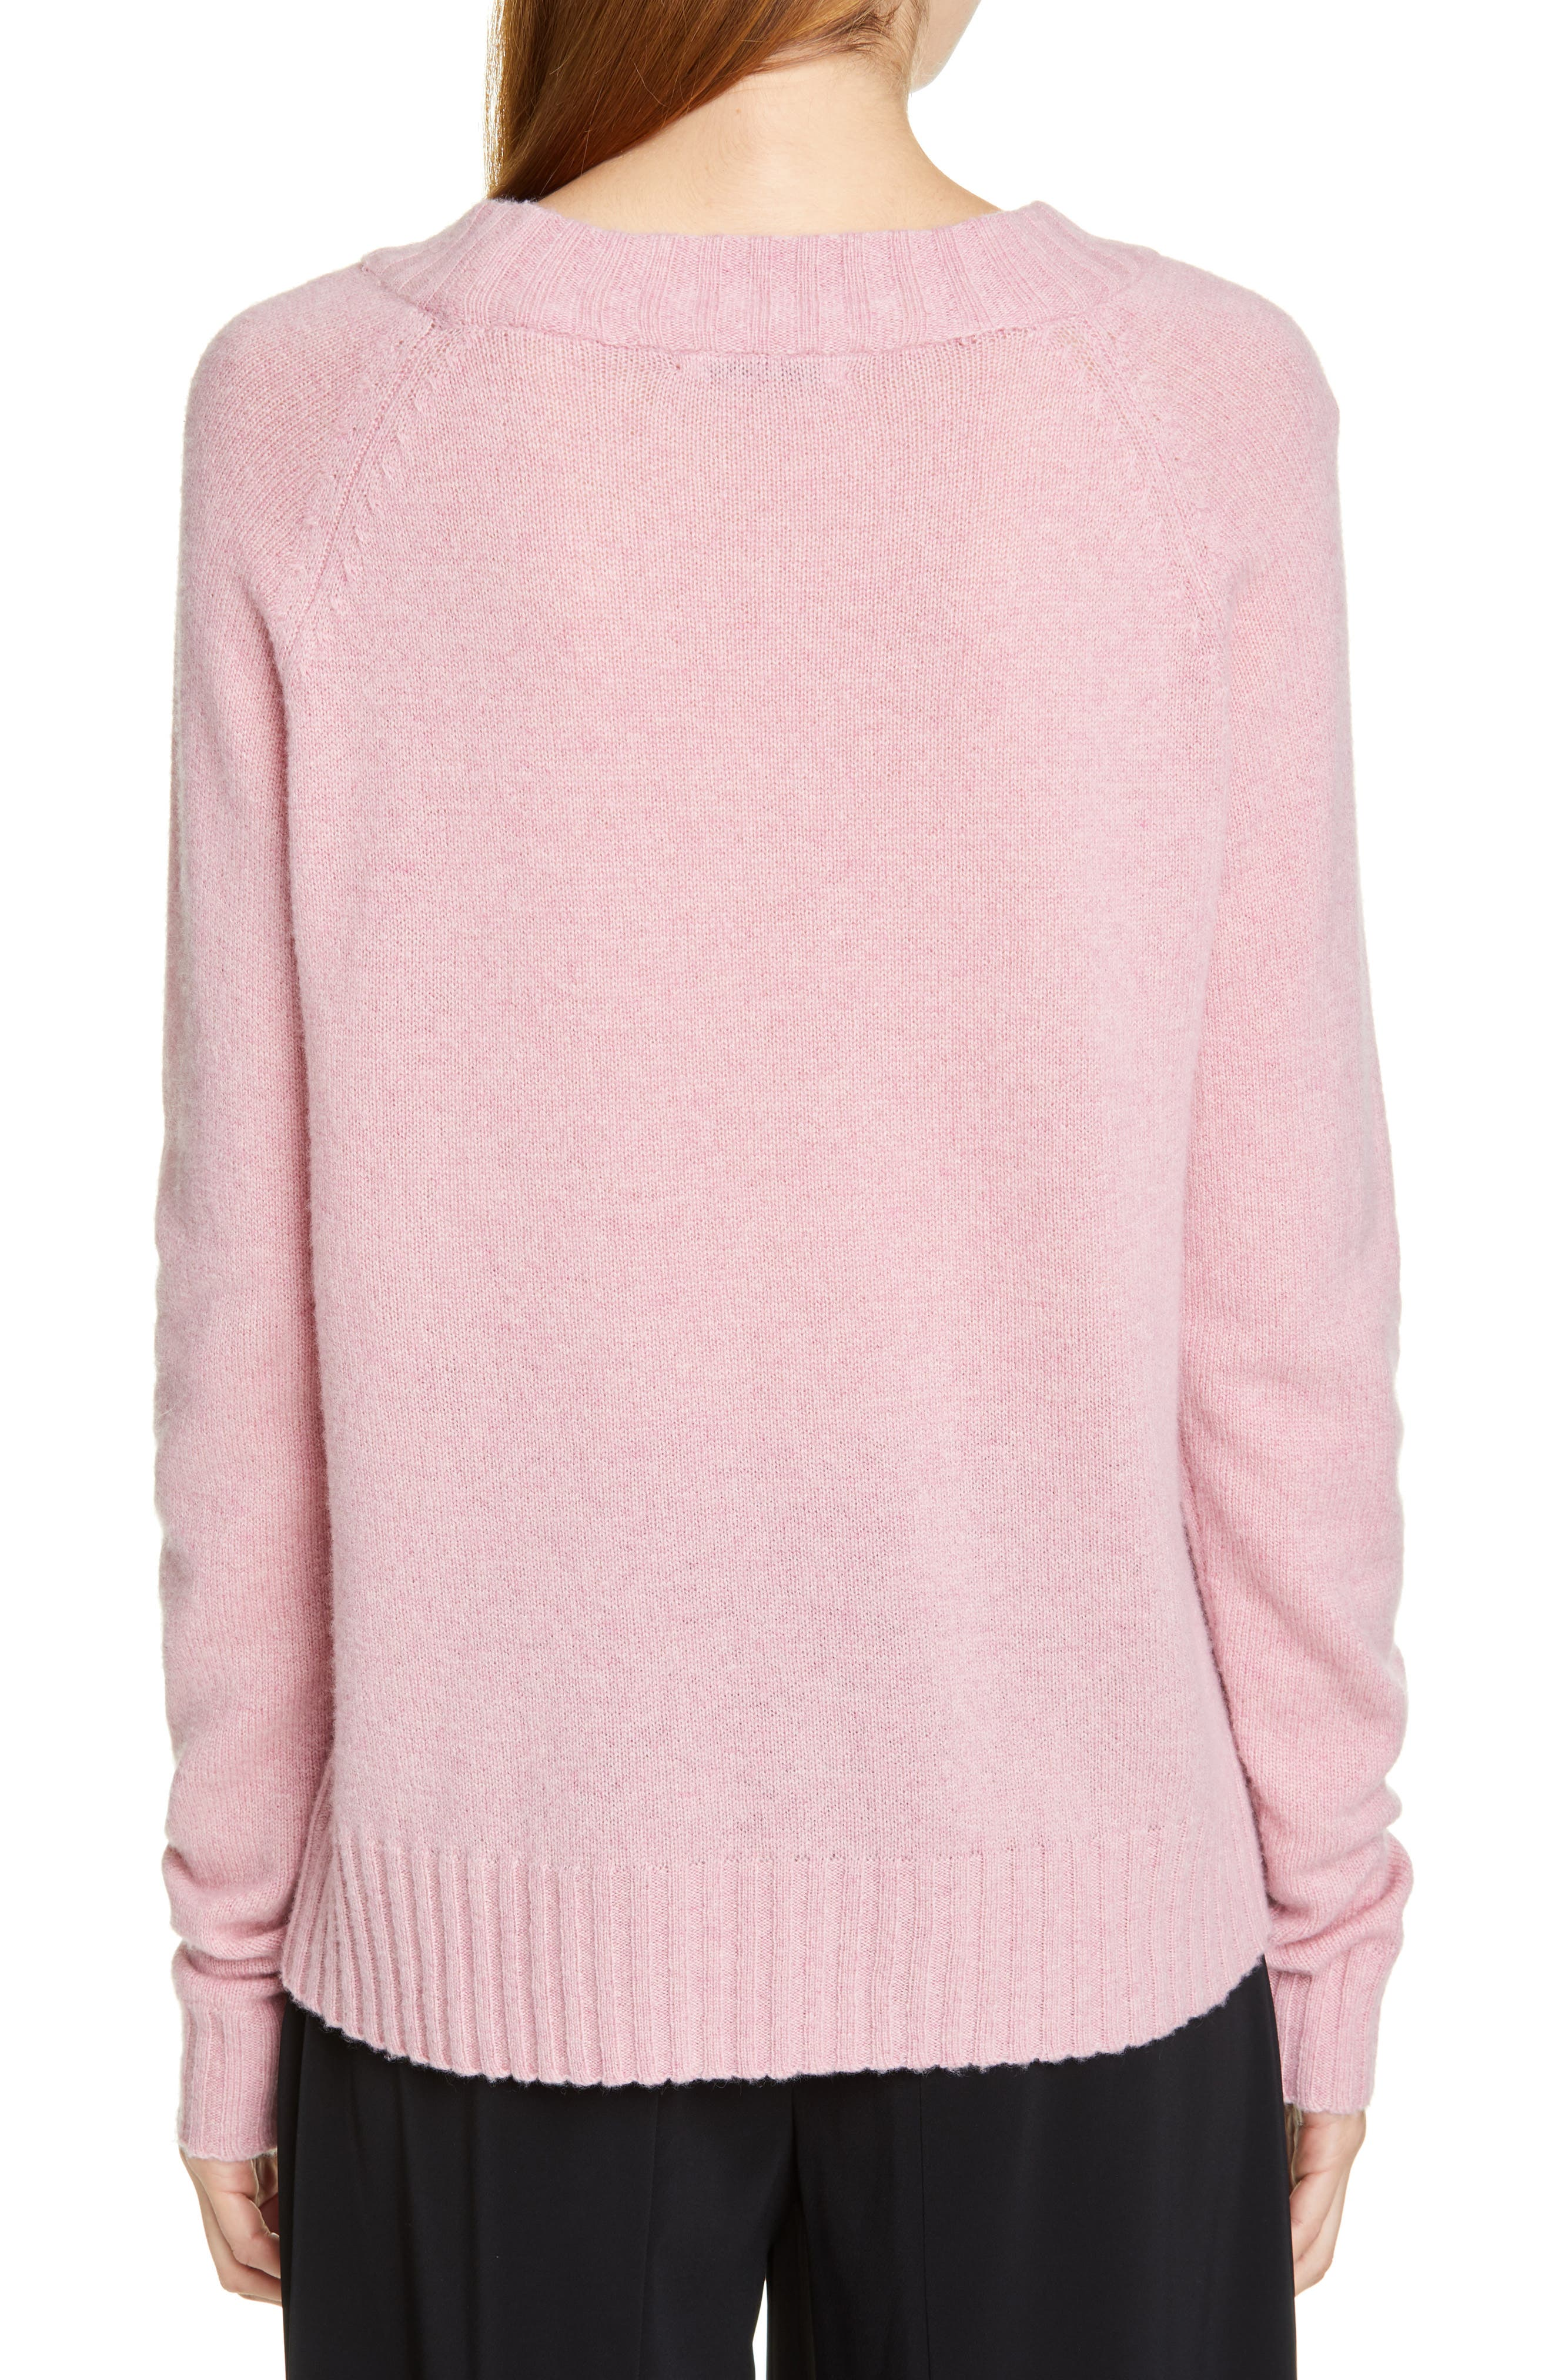 Cashmere Sweater,                             Alternate thumbnail 2, color,                             PINK